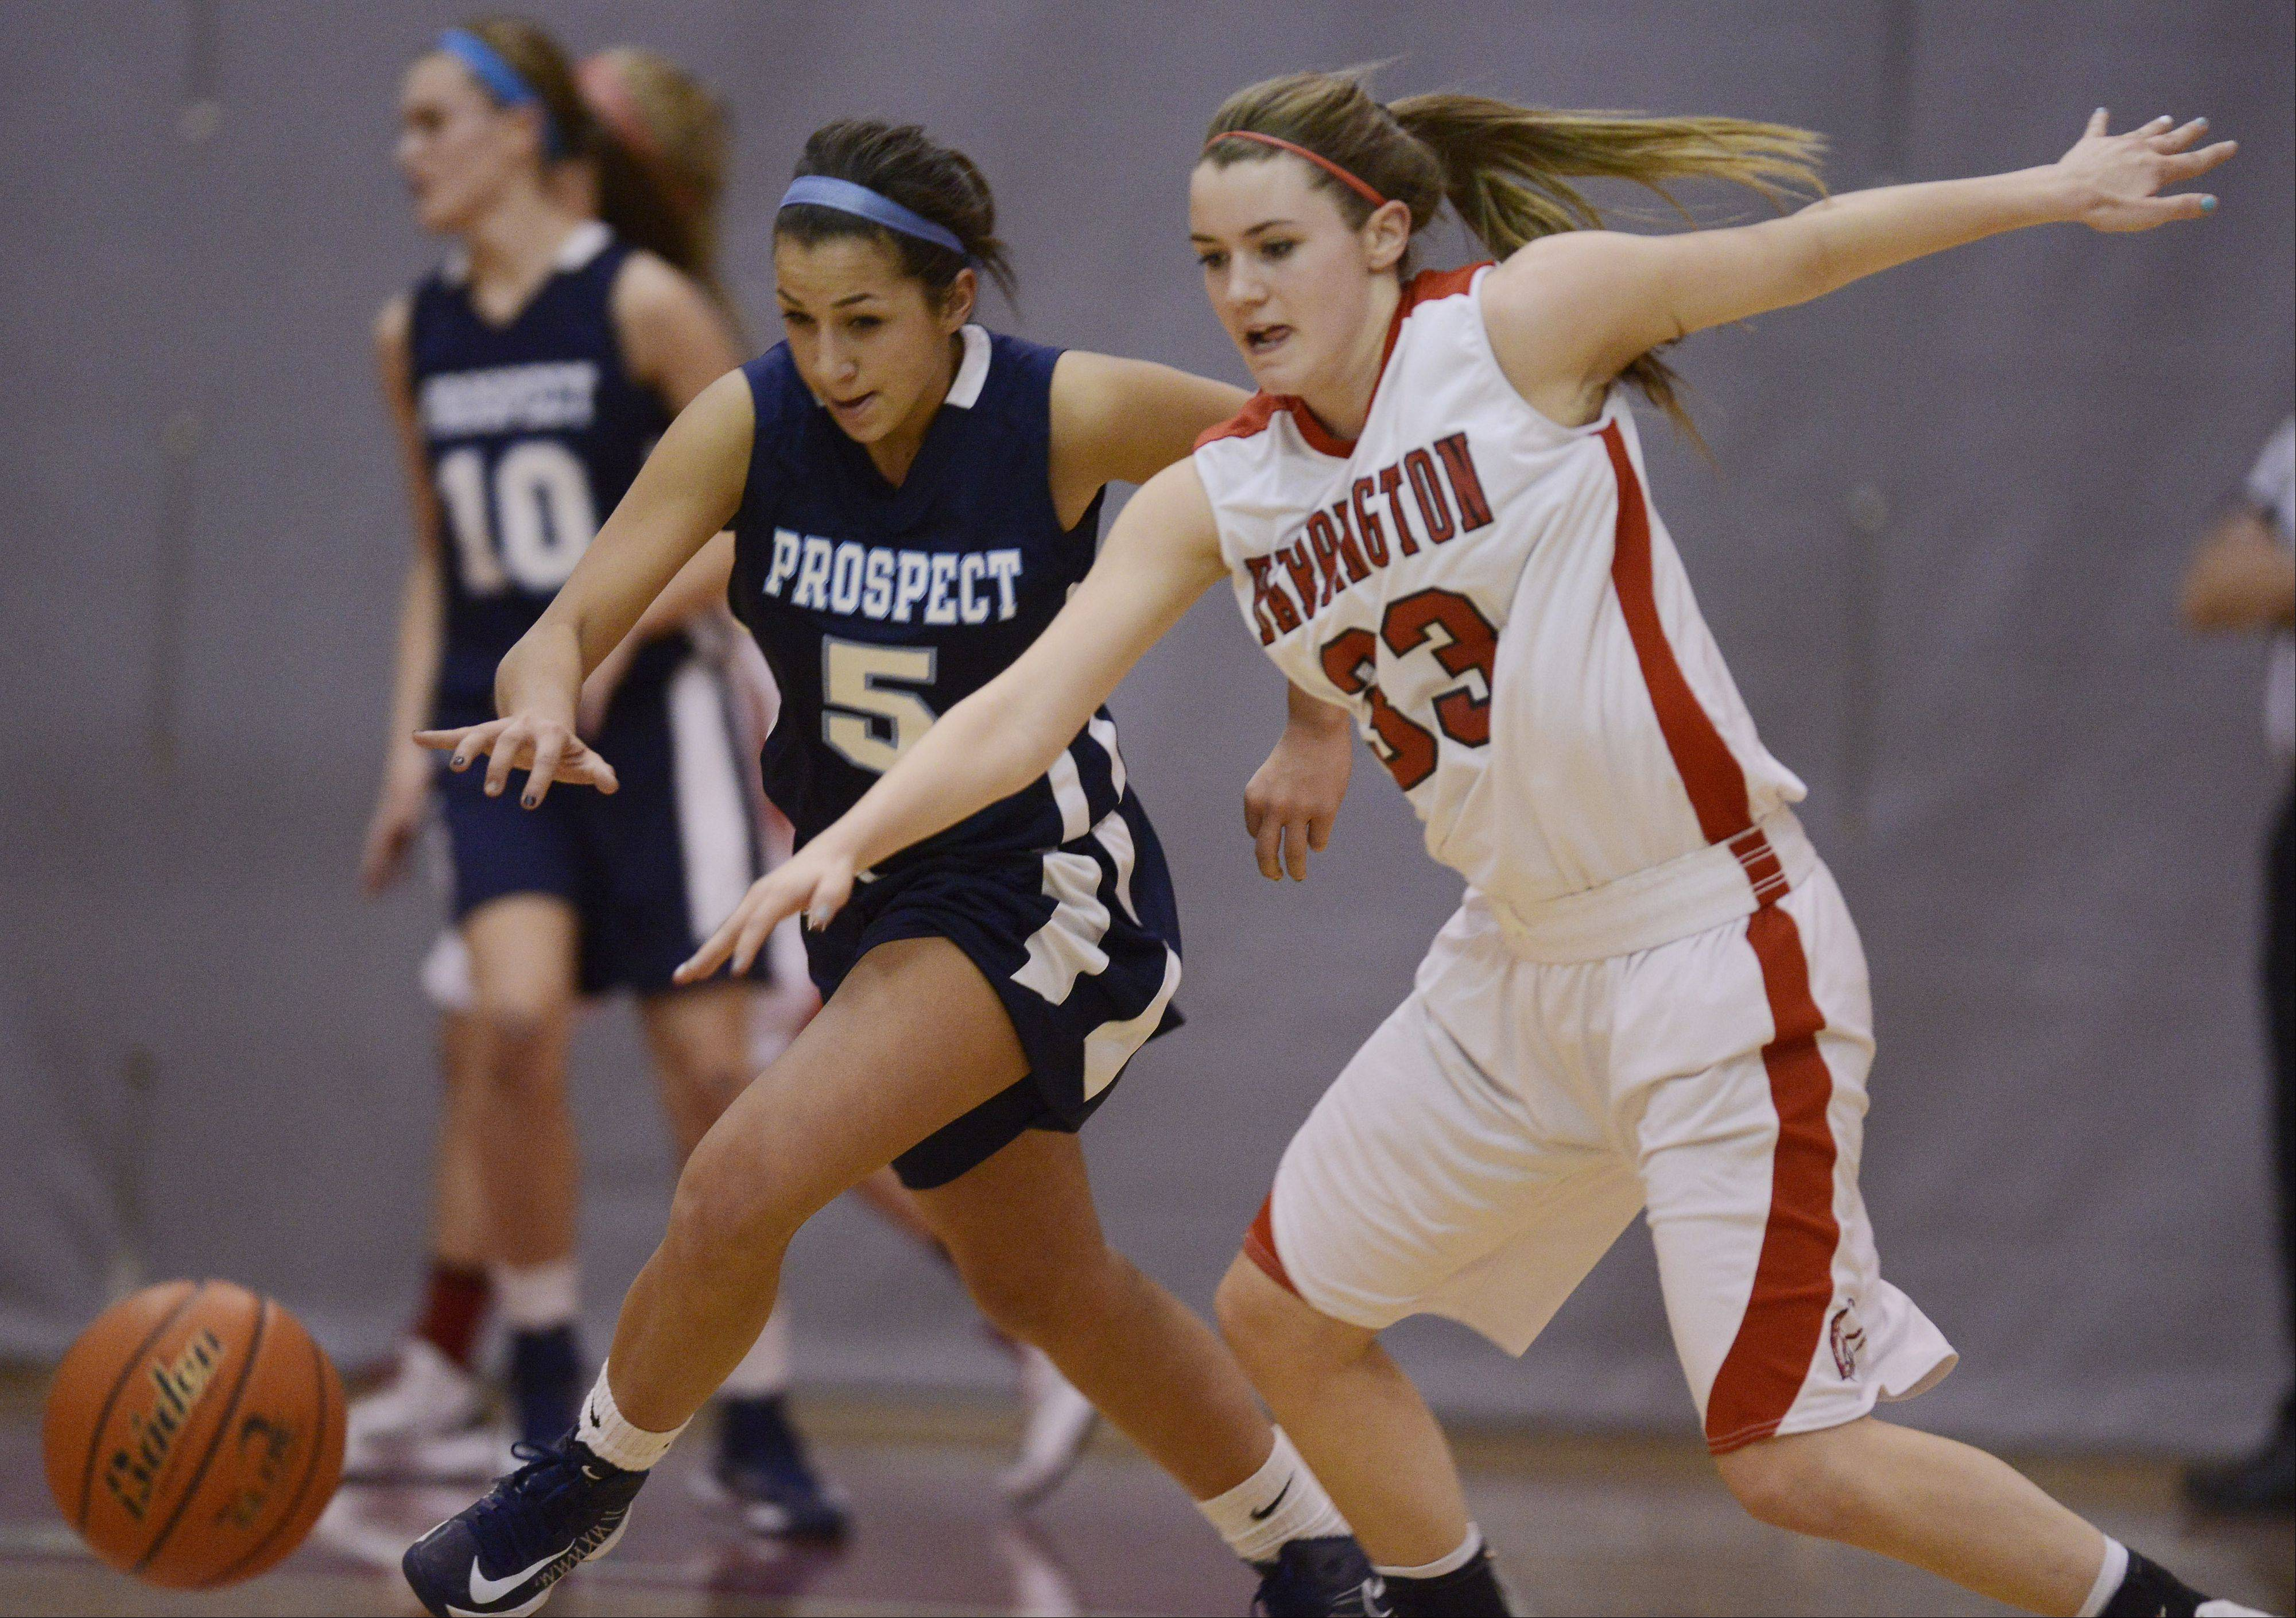 Prospect's Kristen Frasco, left, tries to steal the ball from Barrington's Angie Kirchoff.